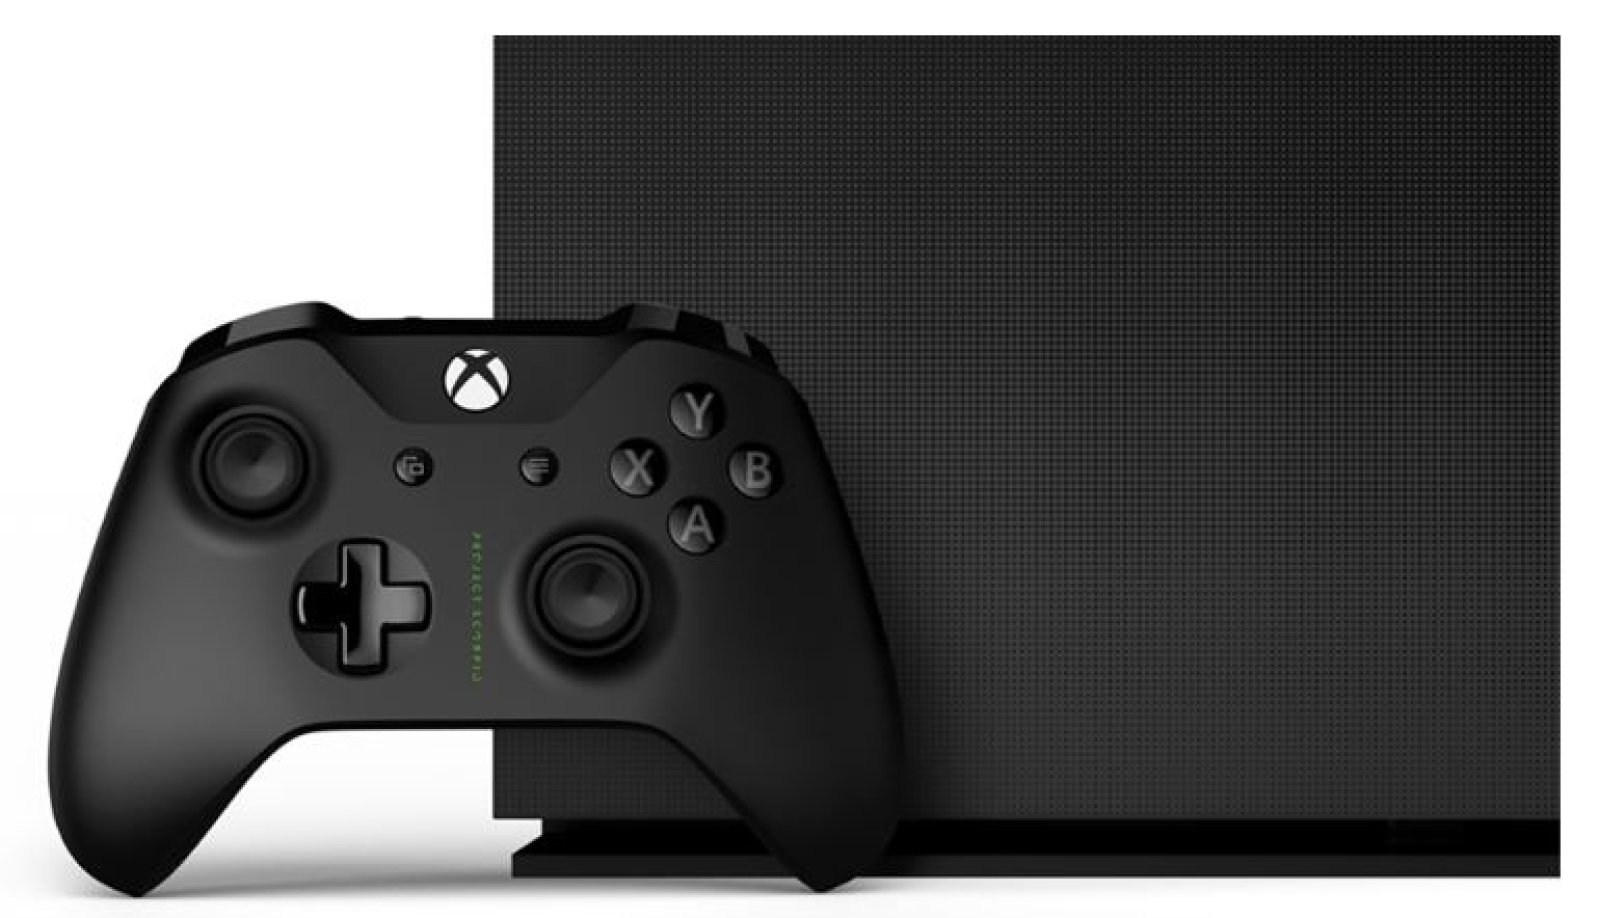 Microsoft could release an Xbox One X 'Project Scorpio' edition | DeviceDaily.com